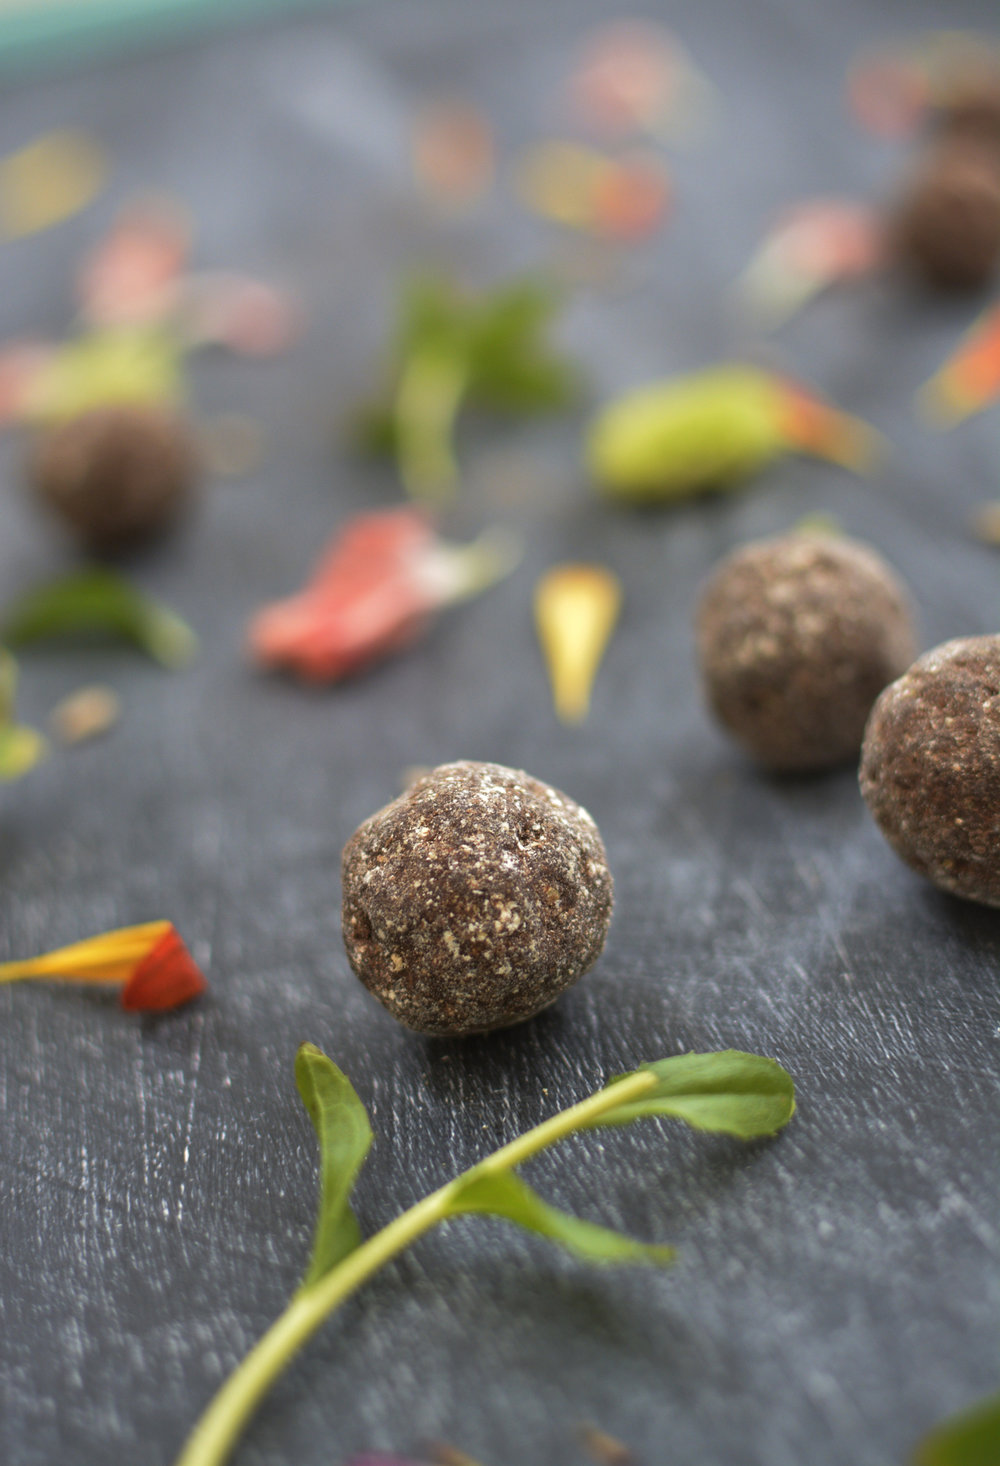 vegan truffle enjoy life foods